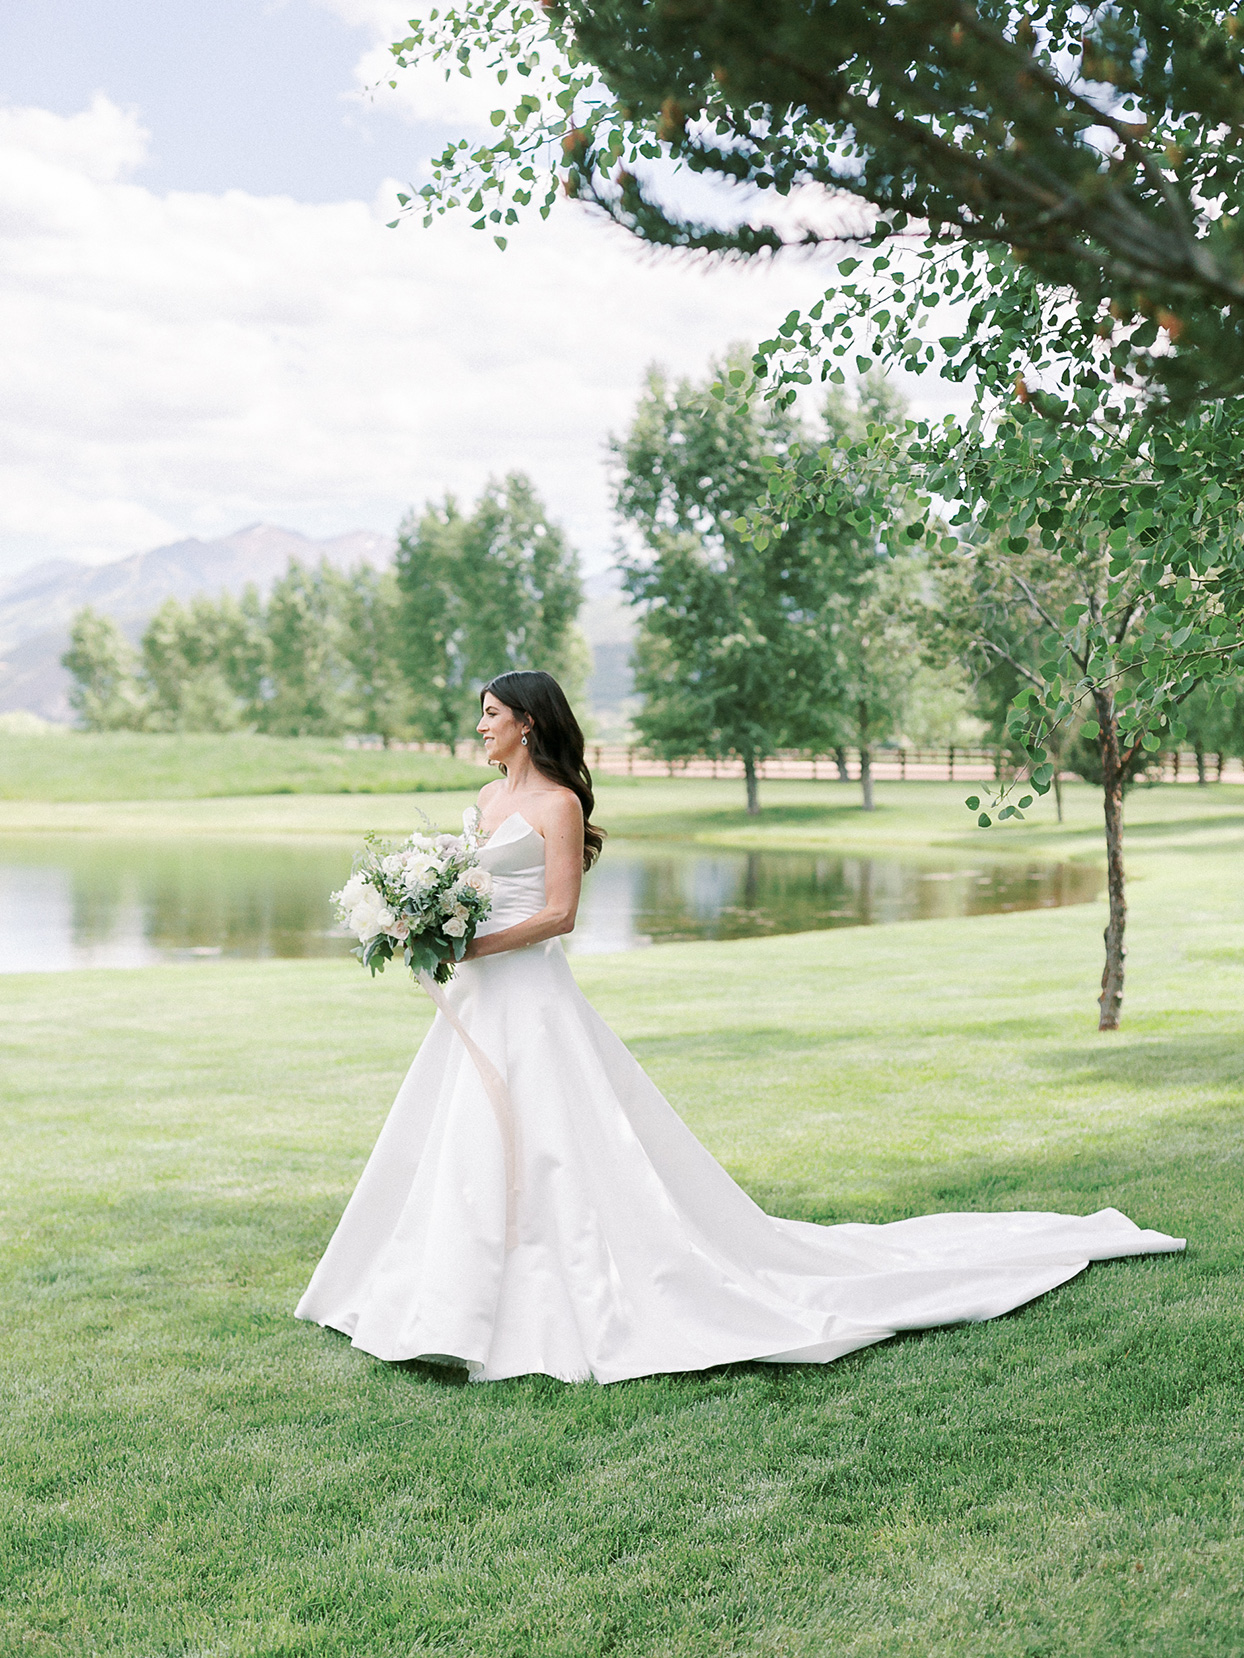 jessica aaron wedding bride standing in field with mountain backdrop